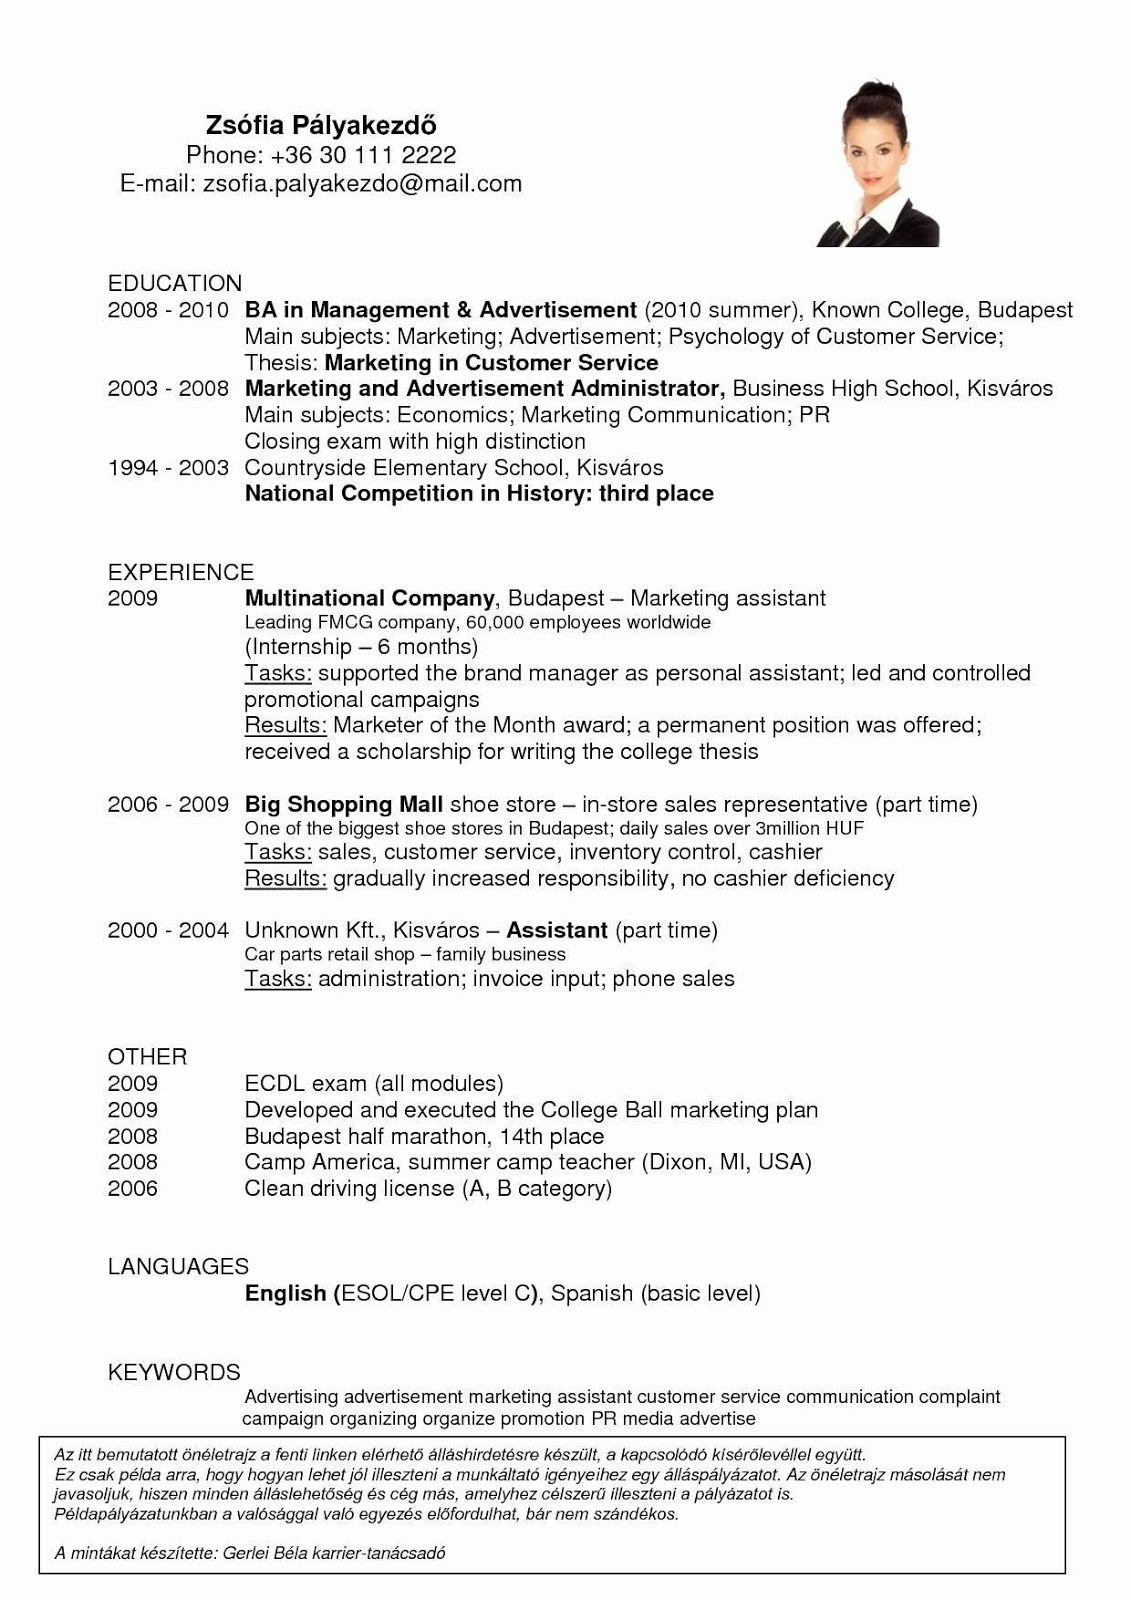 Marketing Assistant Resume Example Assistant Marketing Manager Resume Examples 2019 Marketing Assistant Res Job Resume Examples Resume Examples Resume Skills